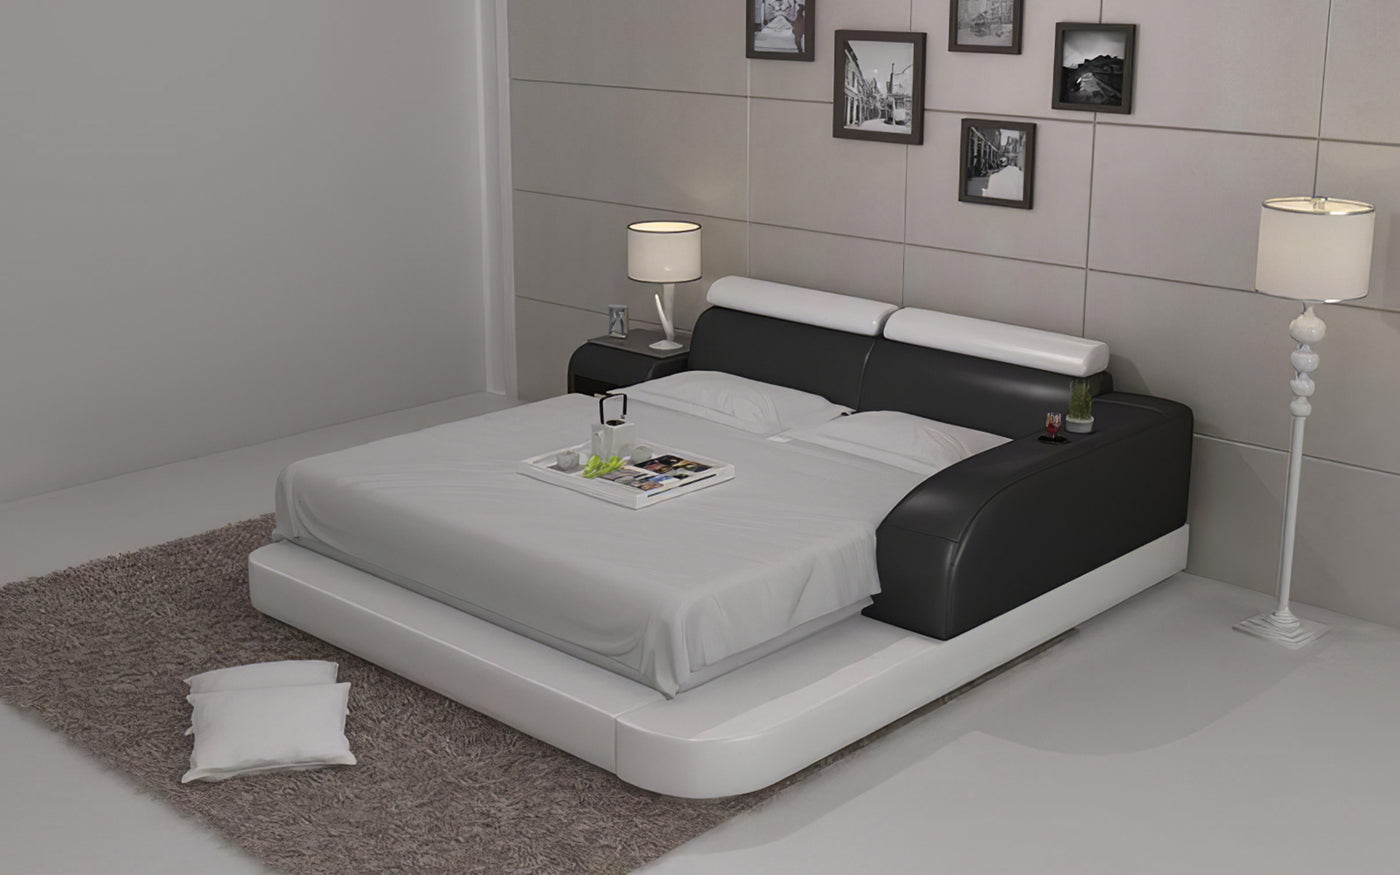 Picture of: Modern Leather King Queen Size Bed With Storage Jubilee Furniture Stores Las Vegas